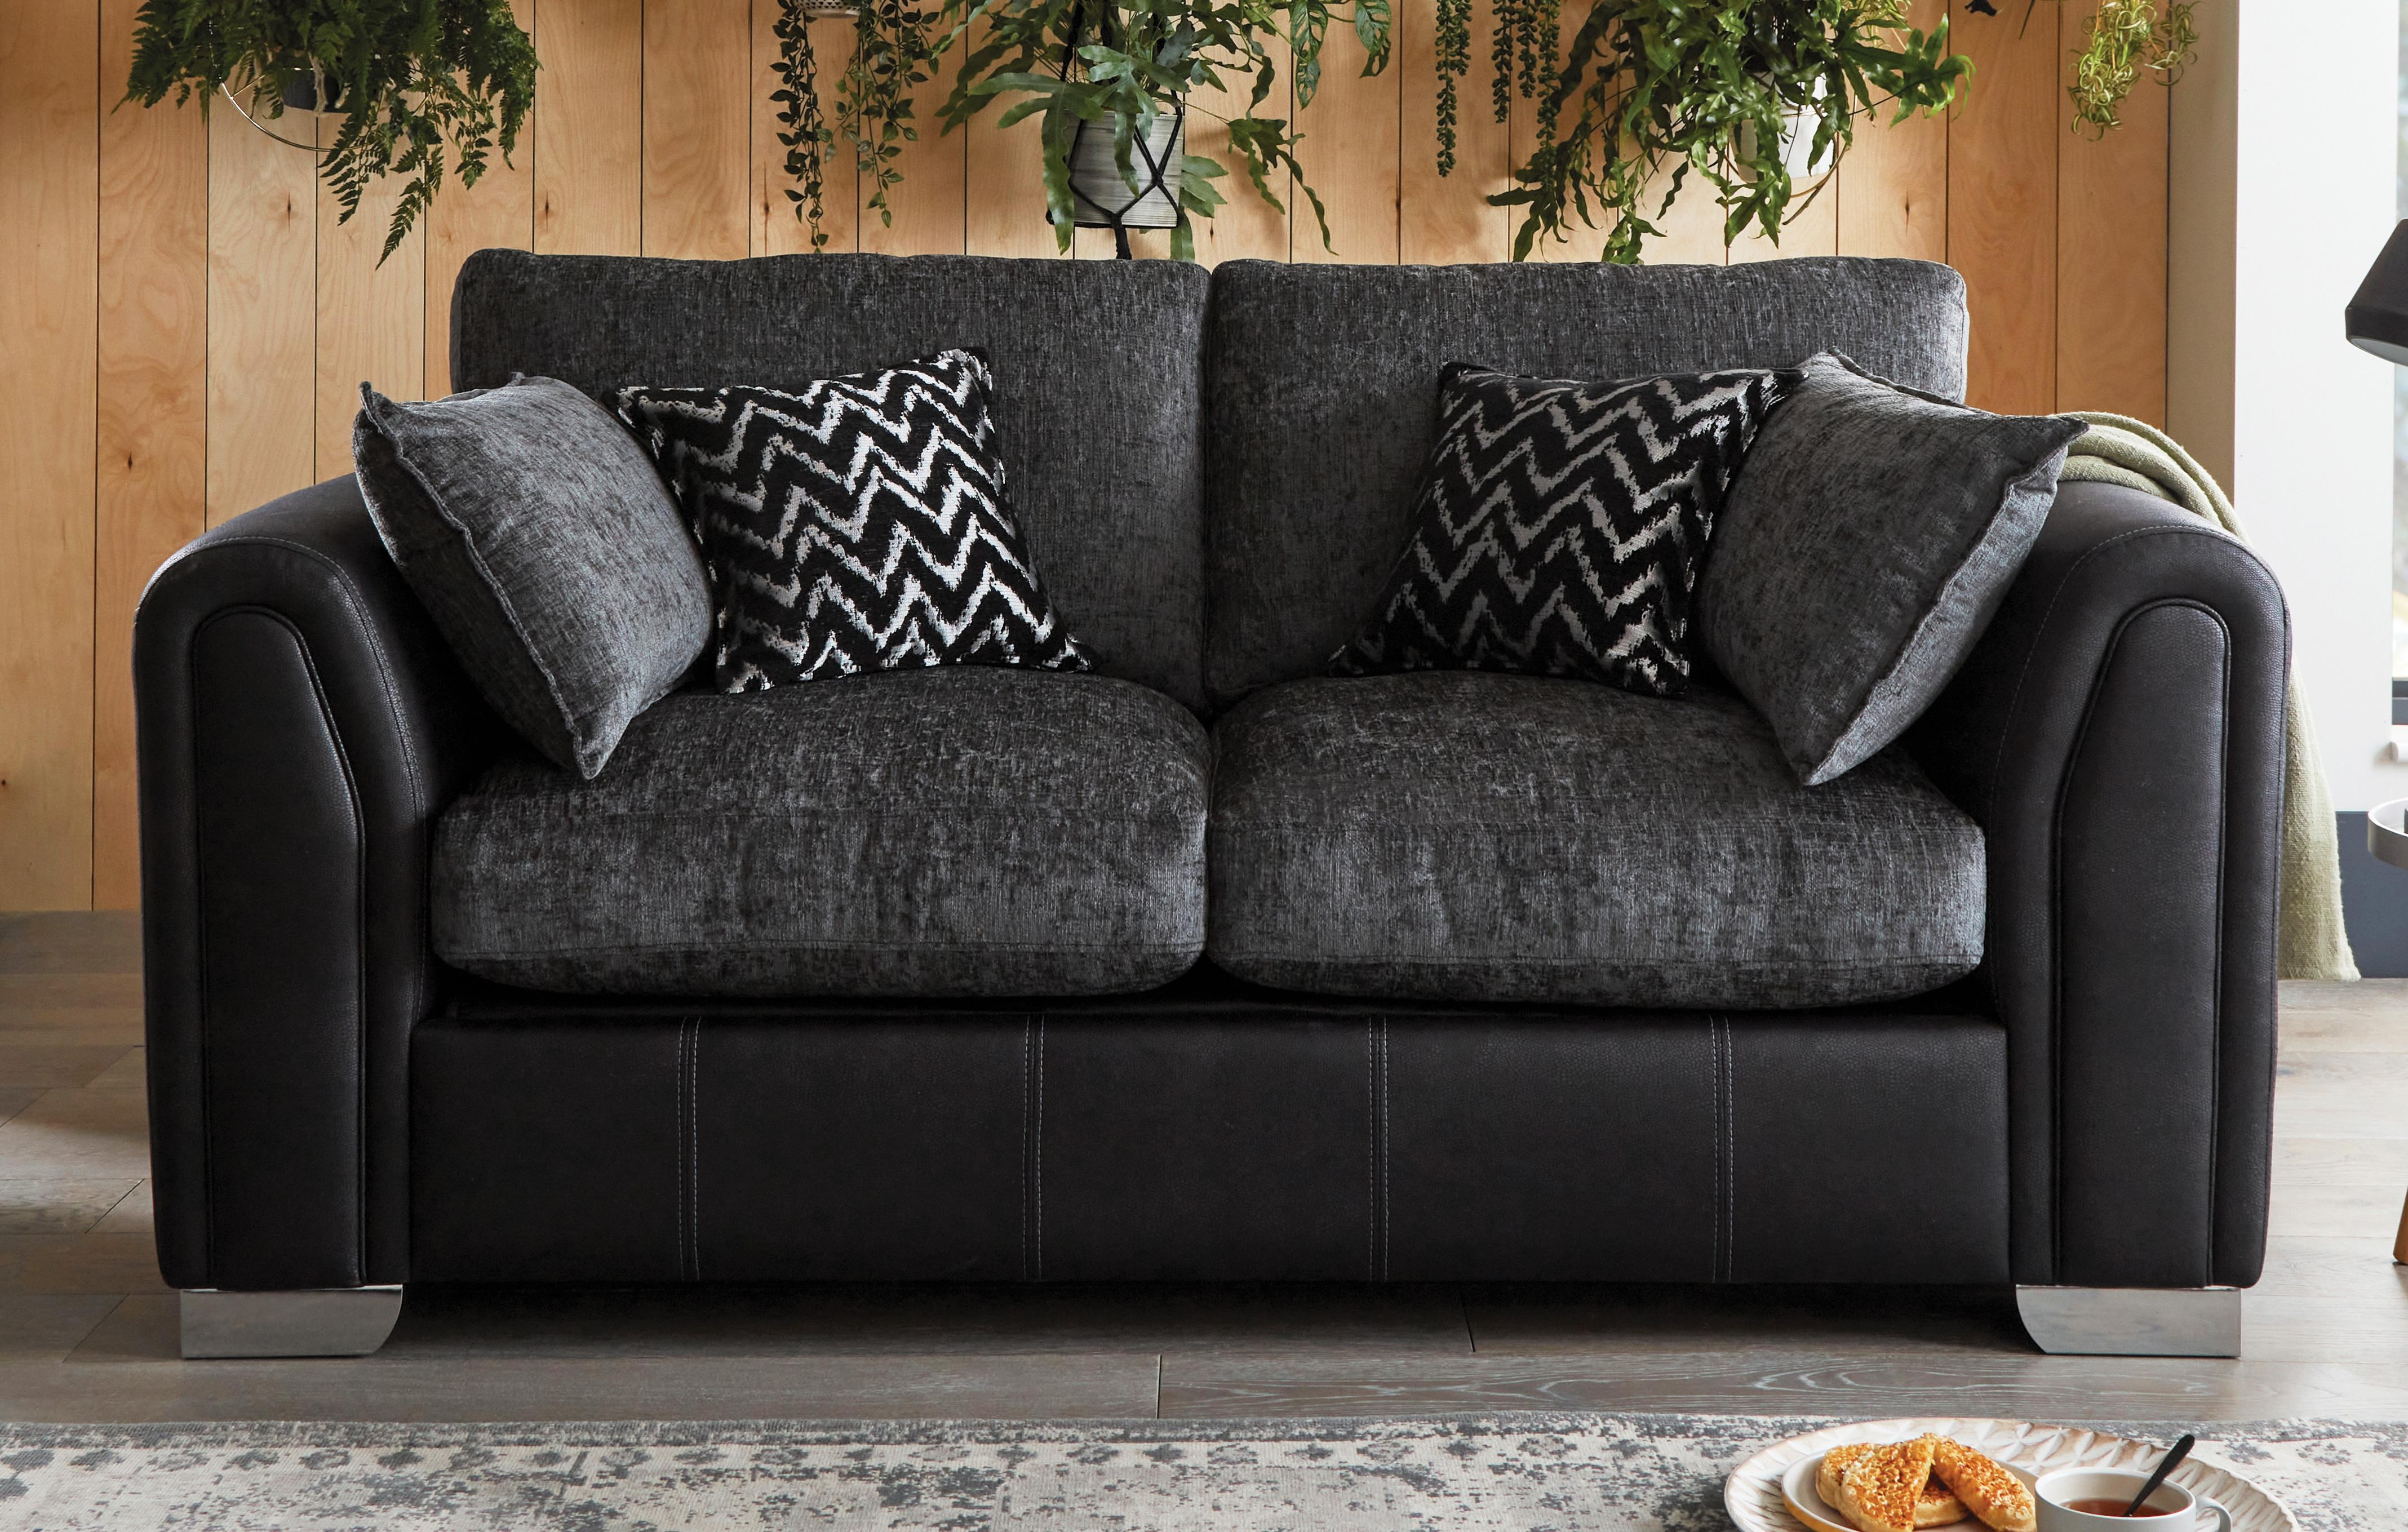 All Our Sofa Beds In Leather Fabric Styles Dfs